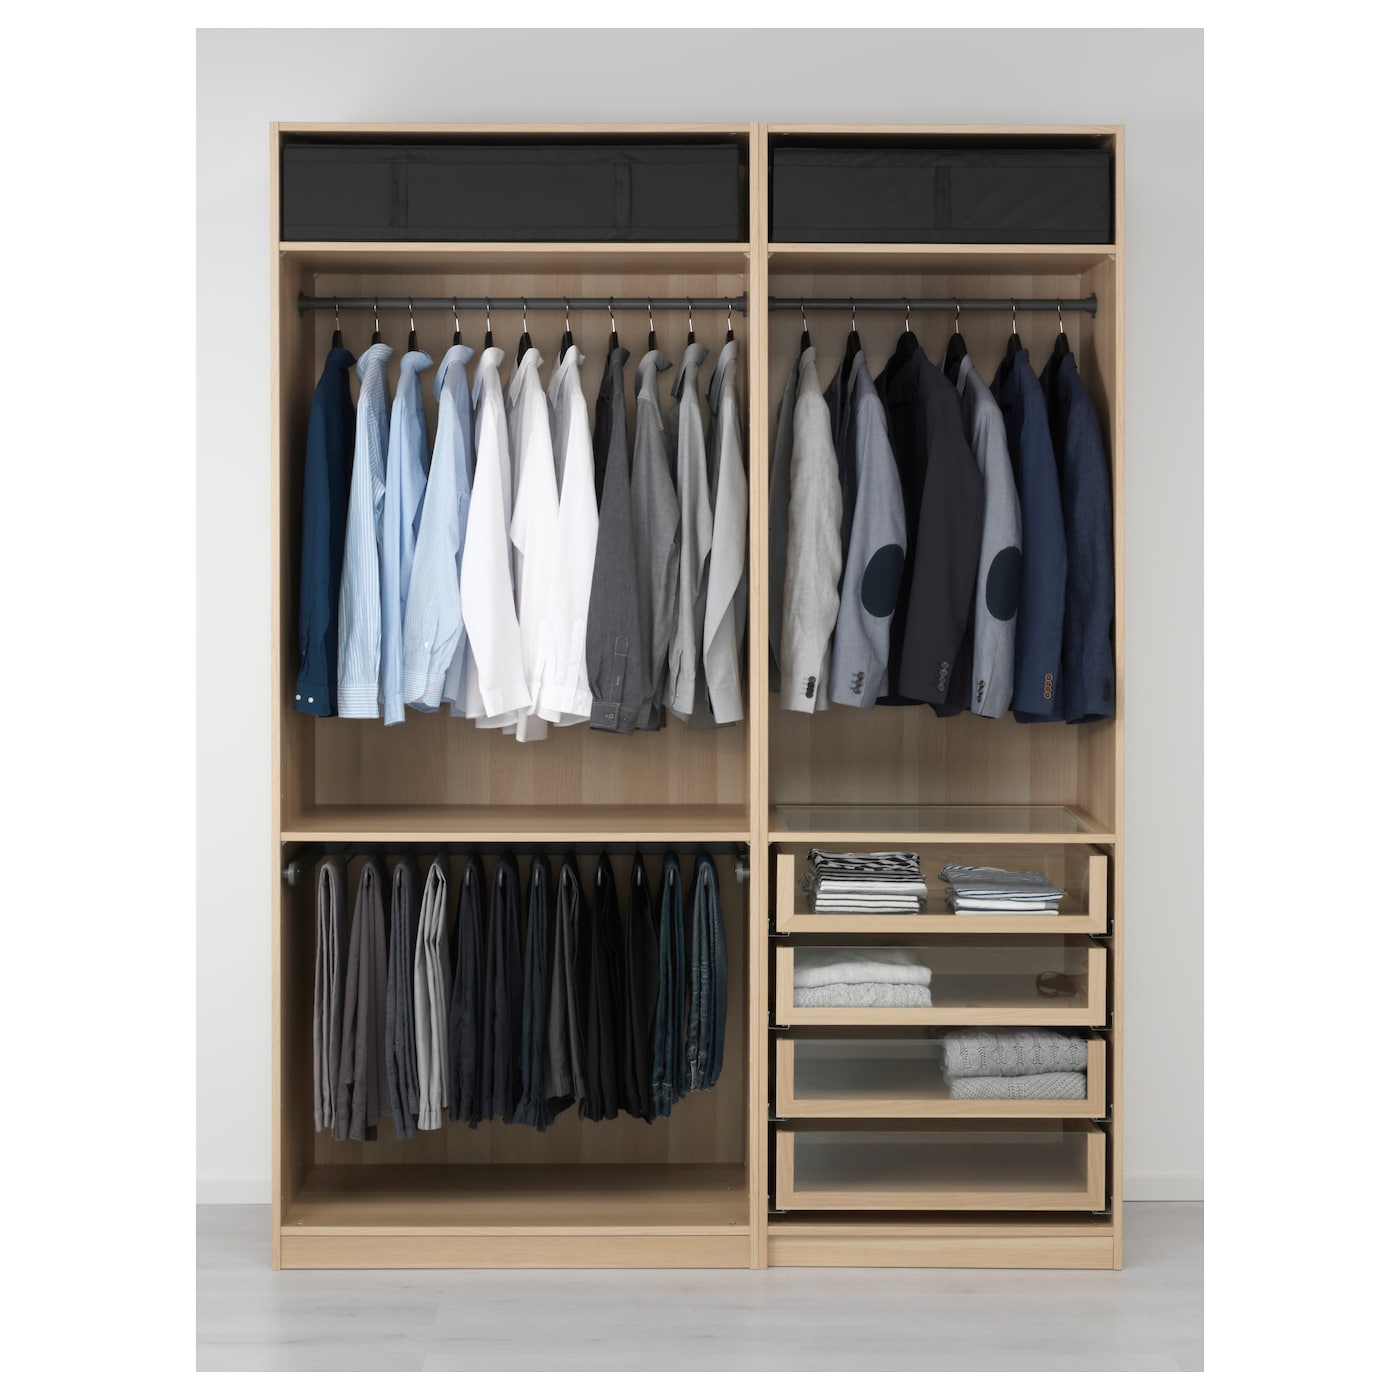 Design Ikea Closet pax wardrobe white stained oak effect 175x58x236 cm ikea 10 year guarantee read about the terms in brochure